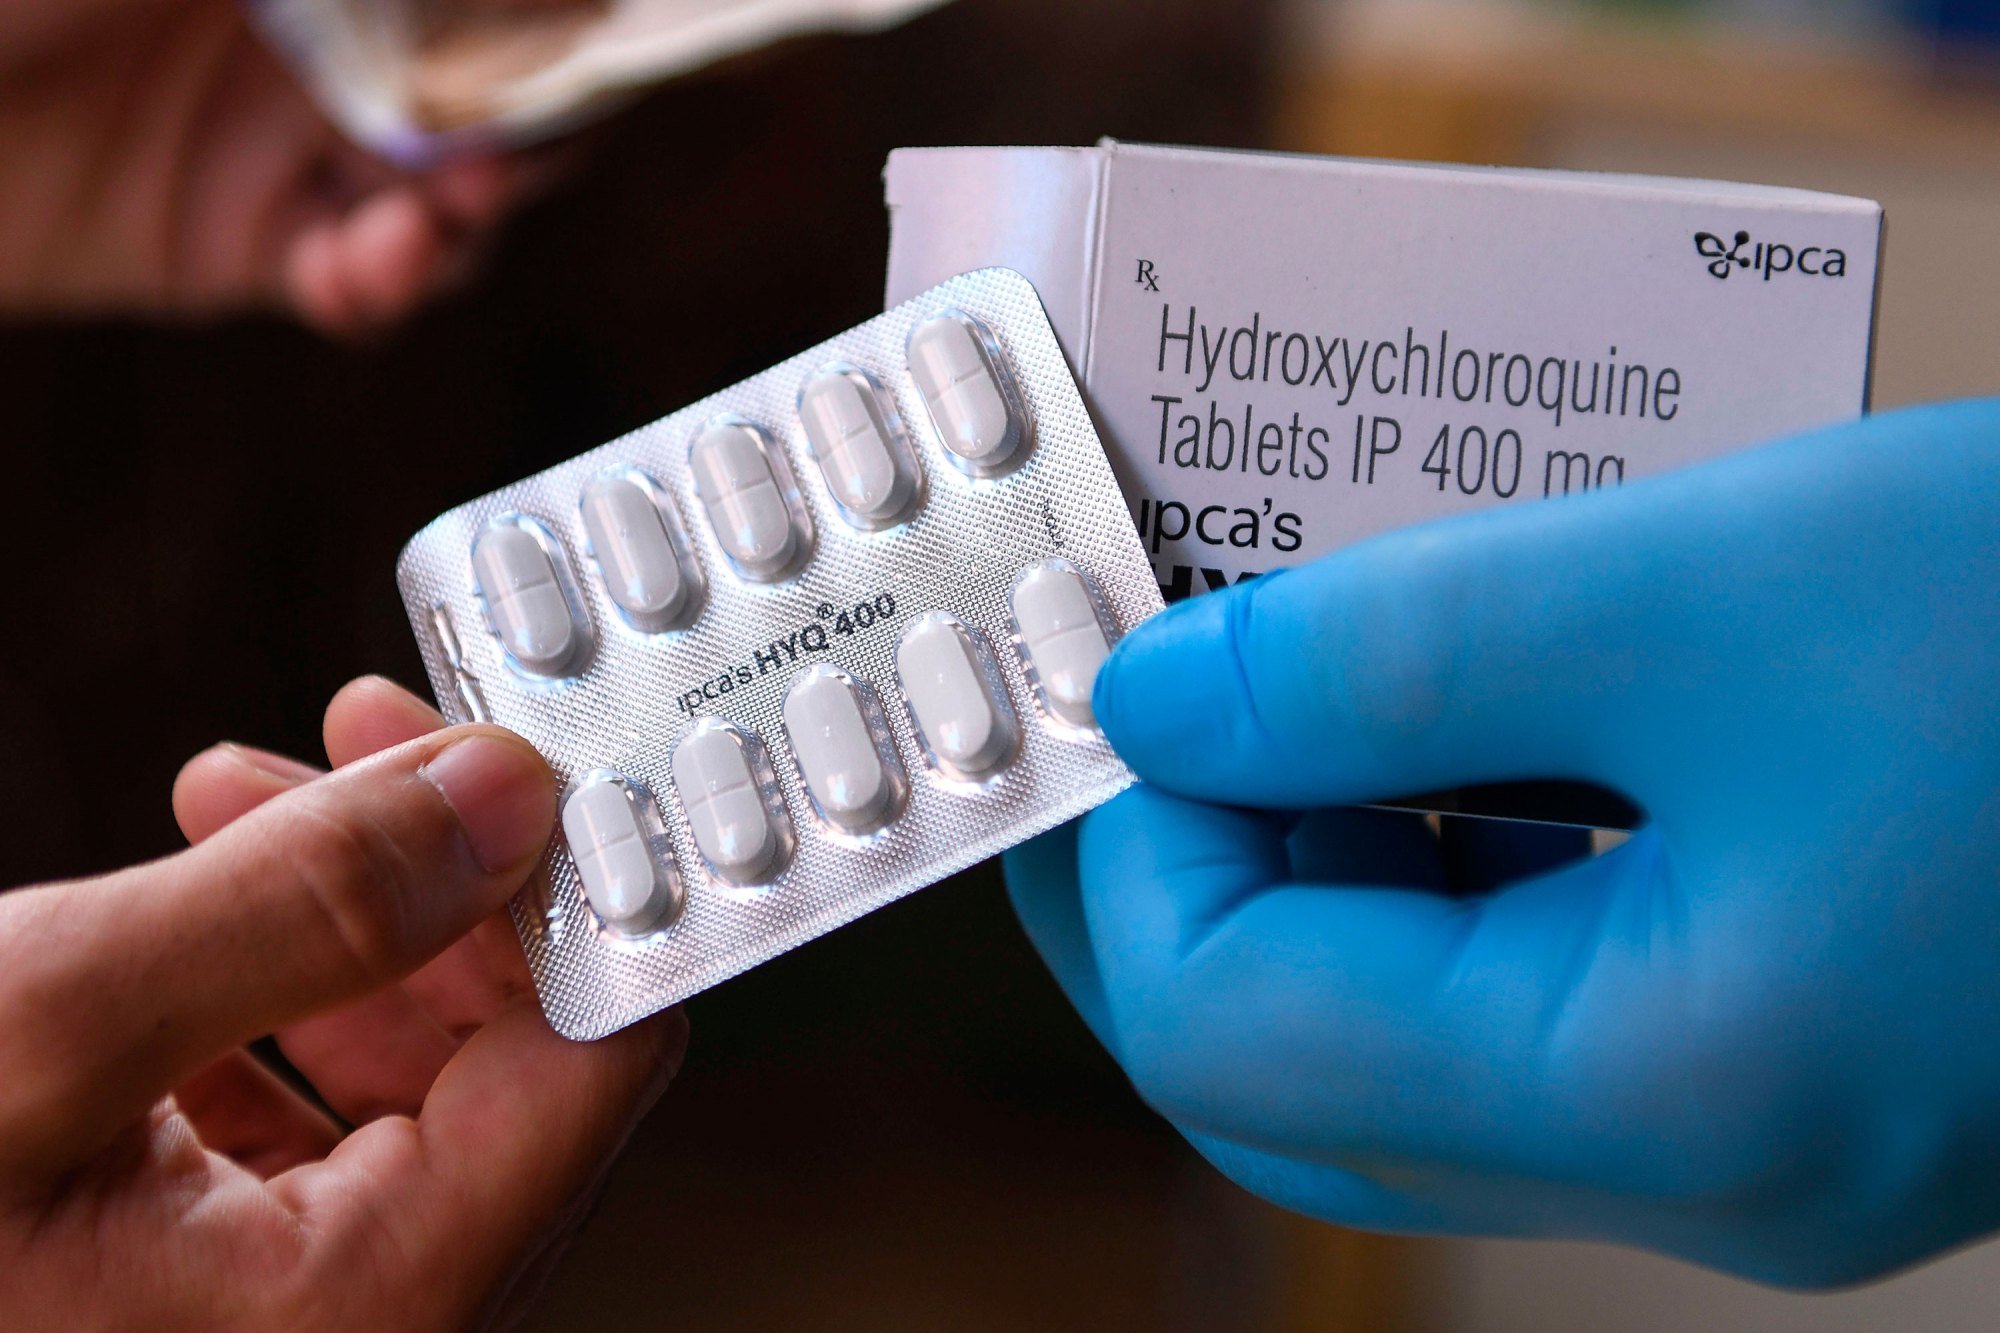 This photo taken on April 27, 2020, shows a vendor displaying hydroxychloroquine (HCQ) tablets at a pharmacy in Amritsar. (NARINDER NANU/AFP via Getty Images)